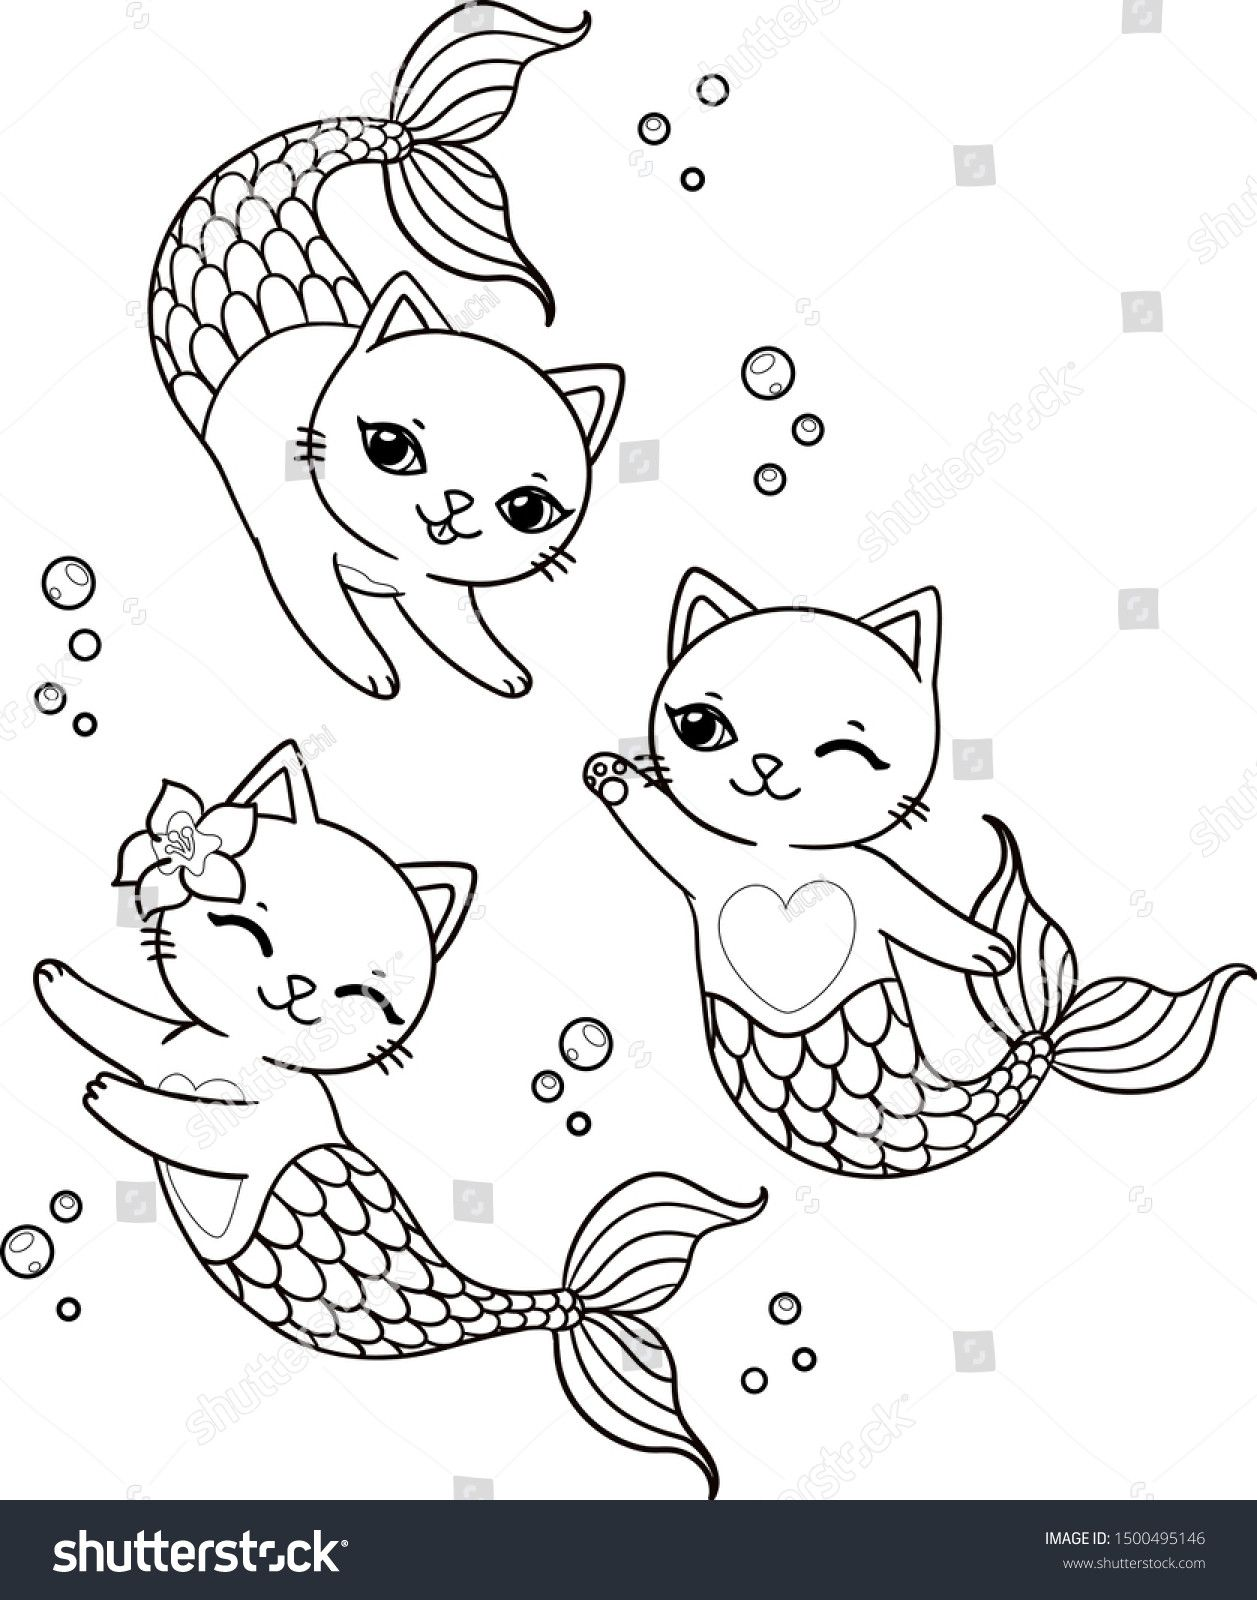 Mermaid Cat Coloring Page Youngandtae Com Mermaid Coloring Book Mermaid Coloring Pages Unicorn Coloring Pages